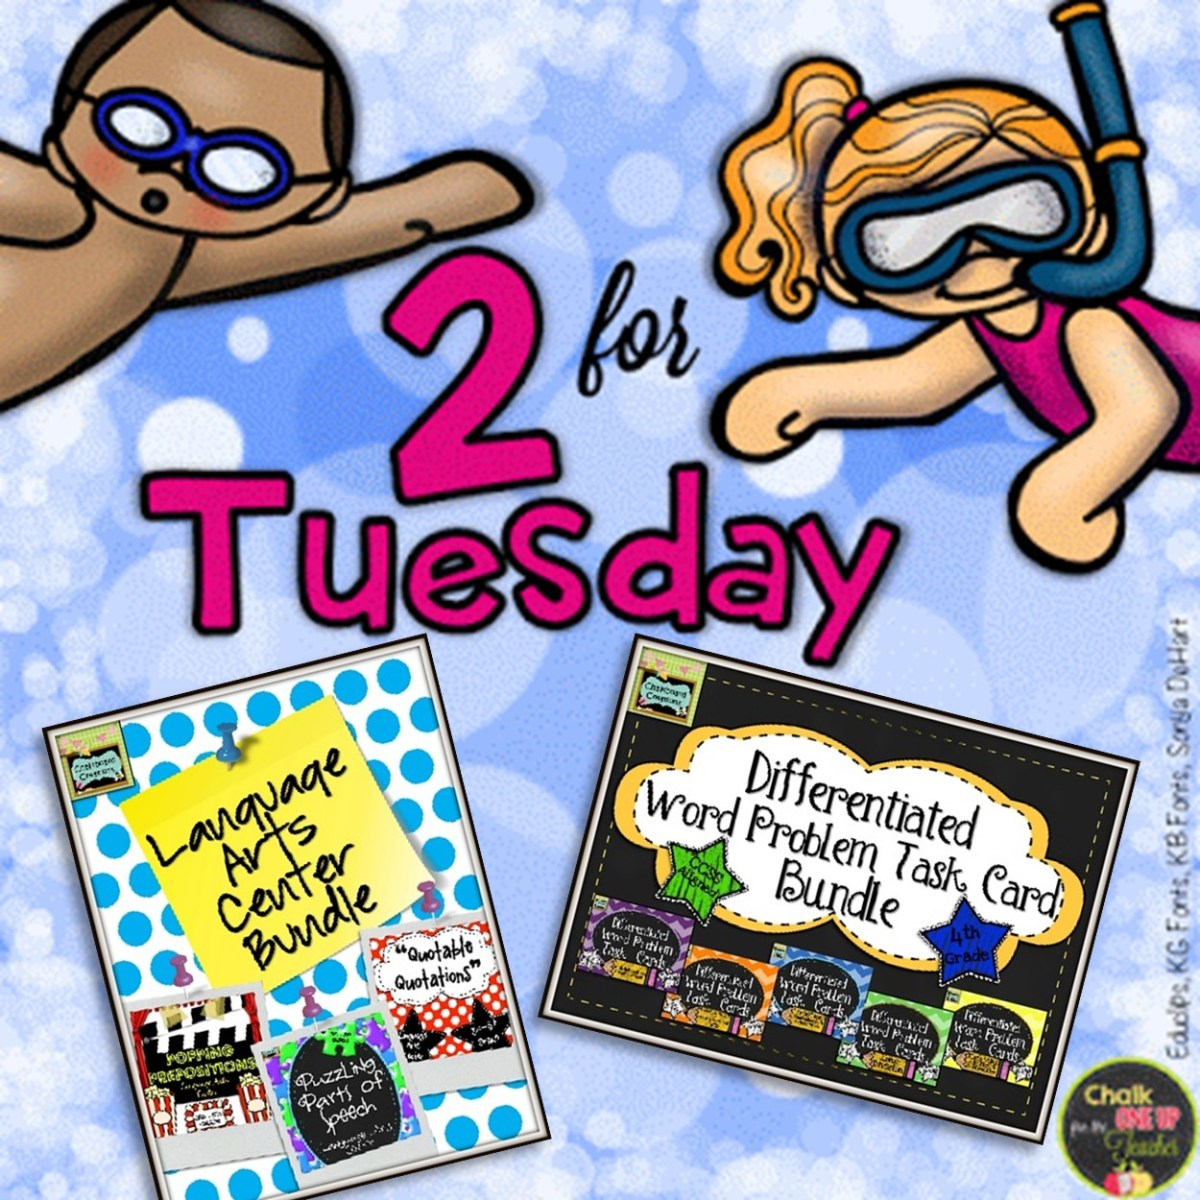 2 for Tuesday: LA Centers and Math Task Card Bundles